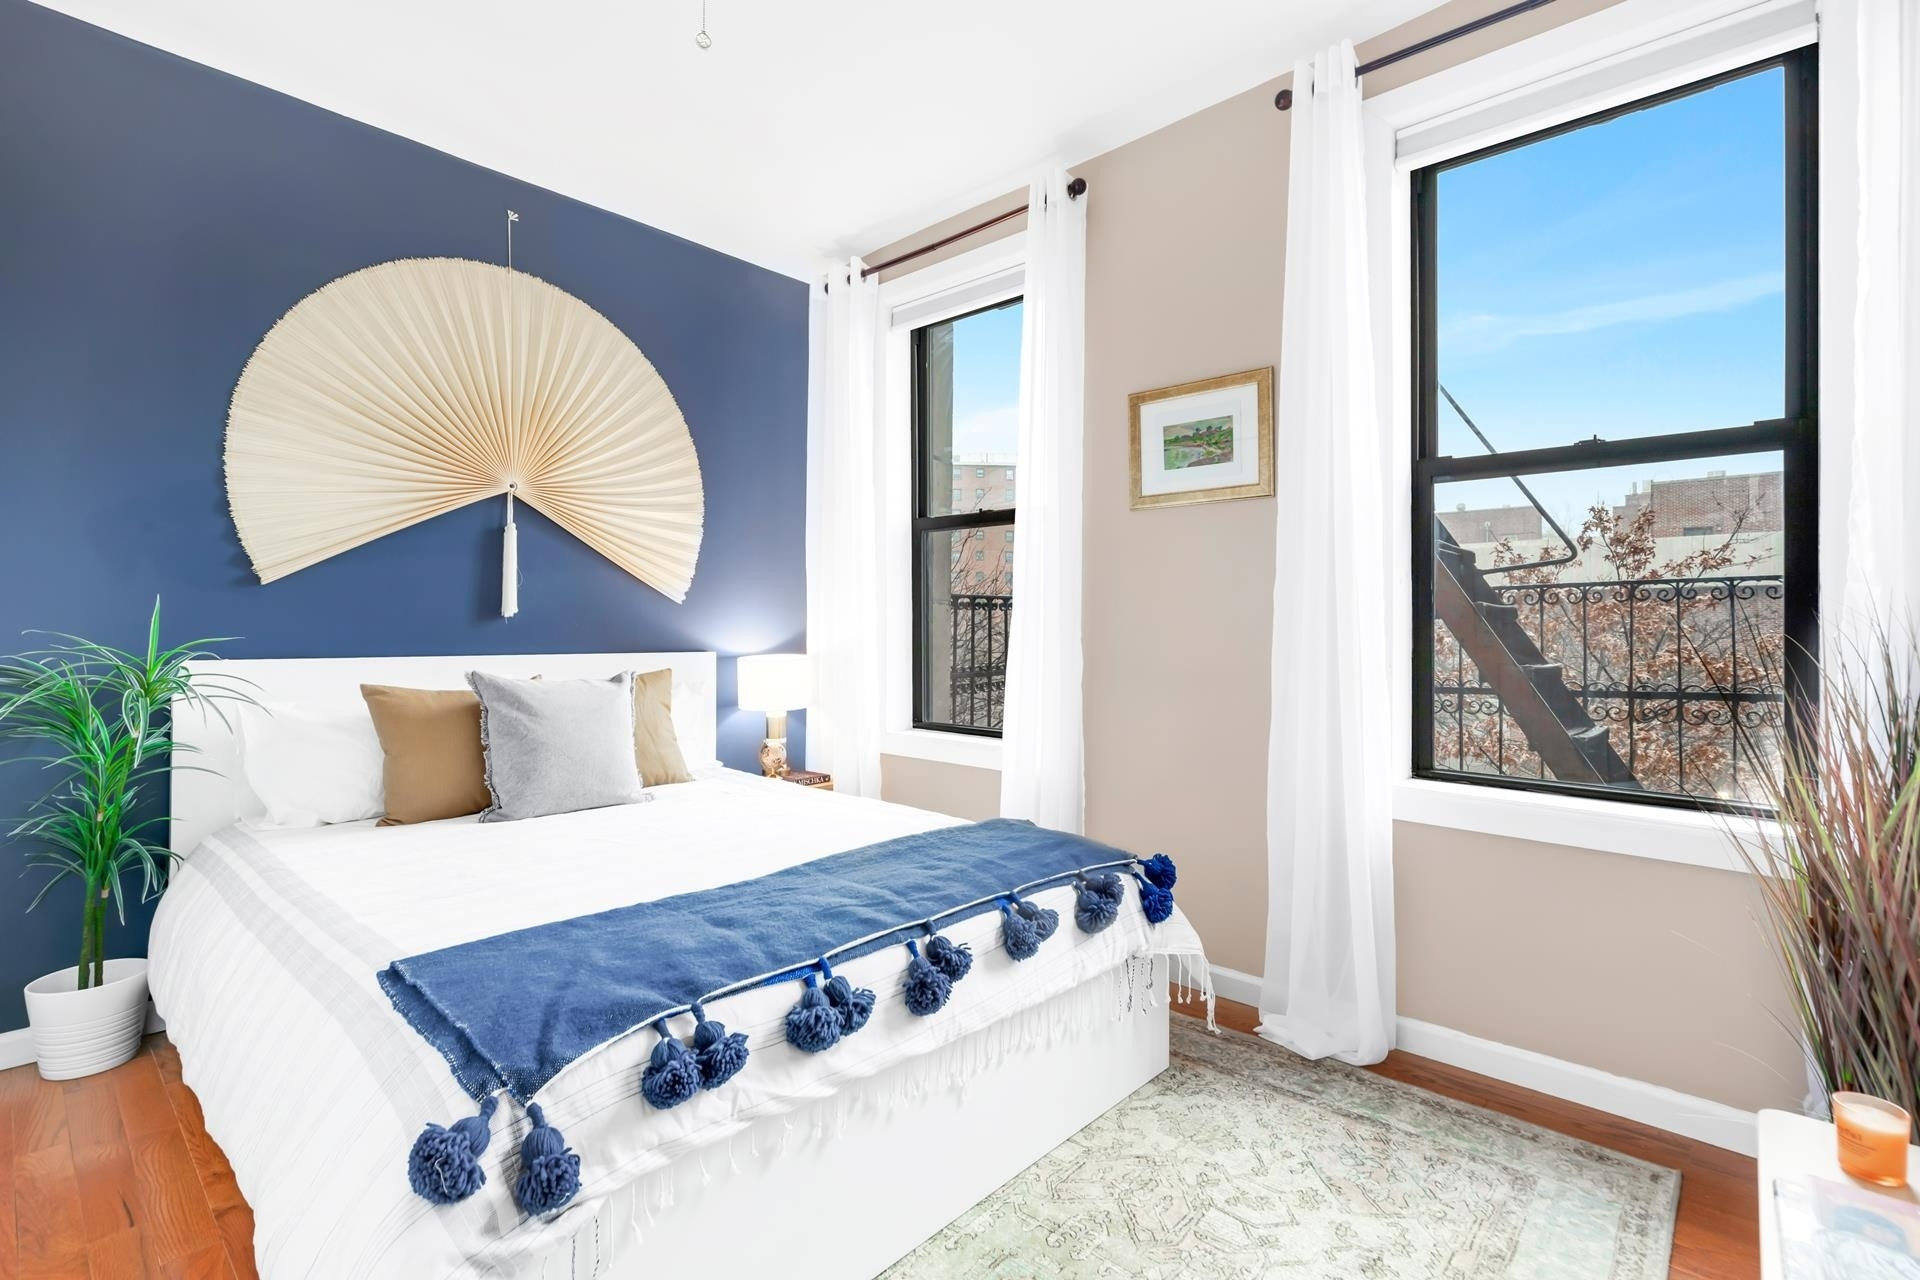 Property at 501 West 122nd St, A5 Morningside Heights, New York, NY 10027